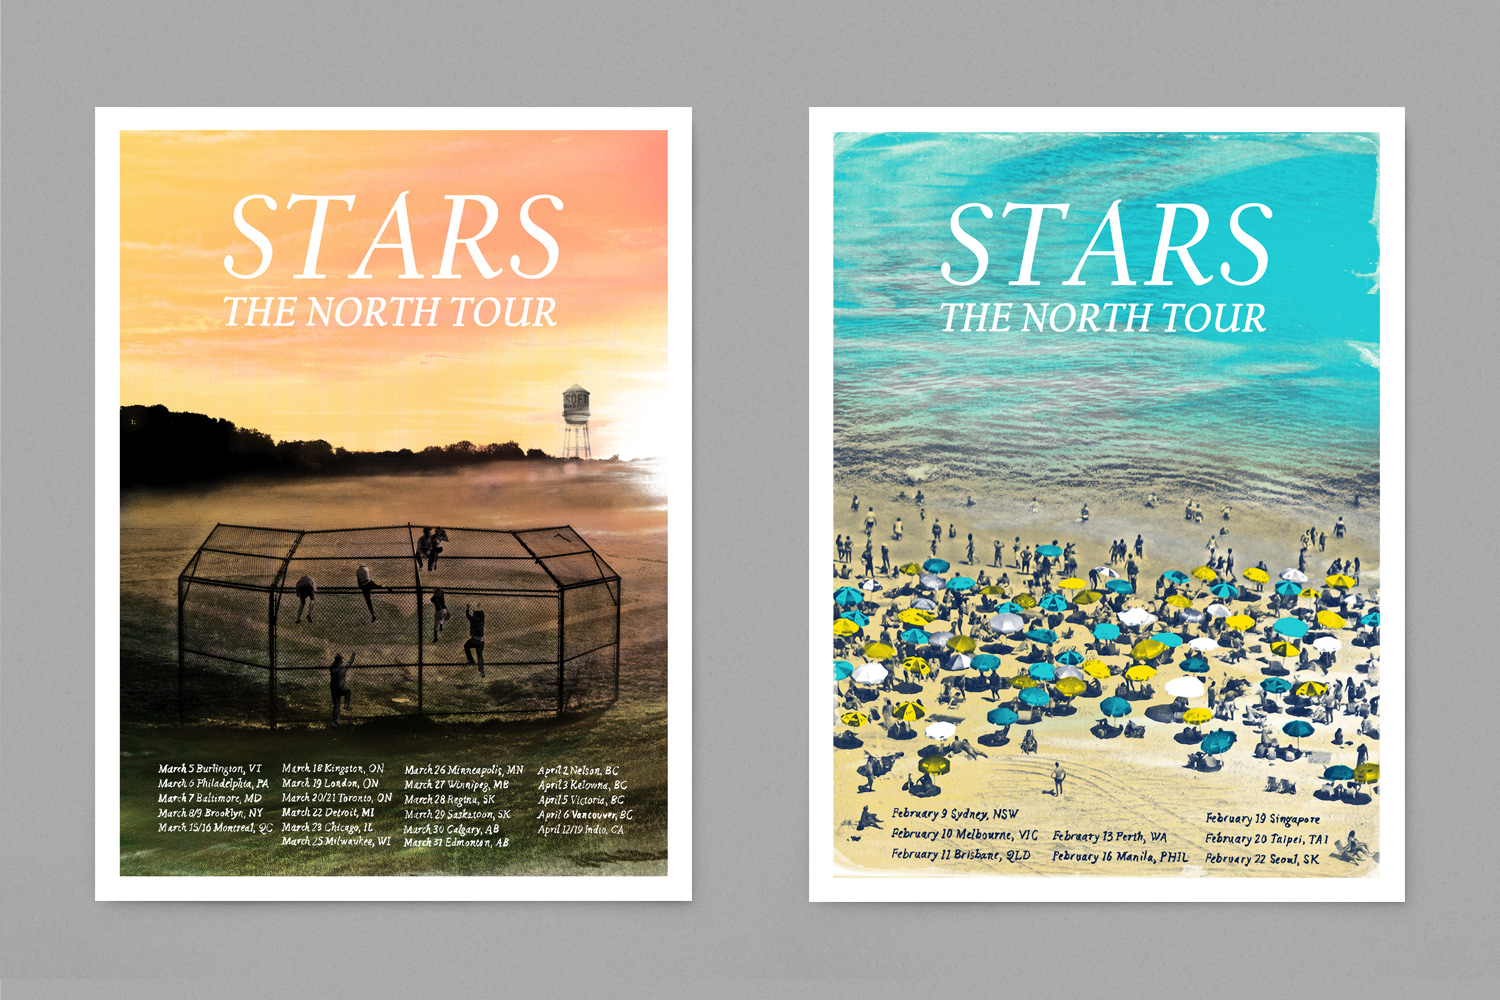 Stars The North Poster Design